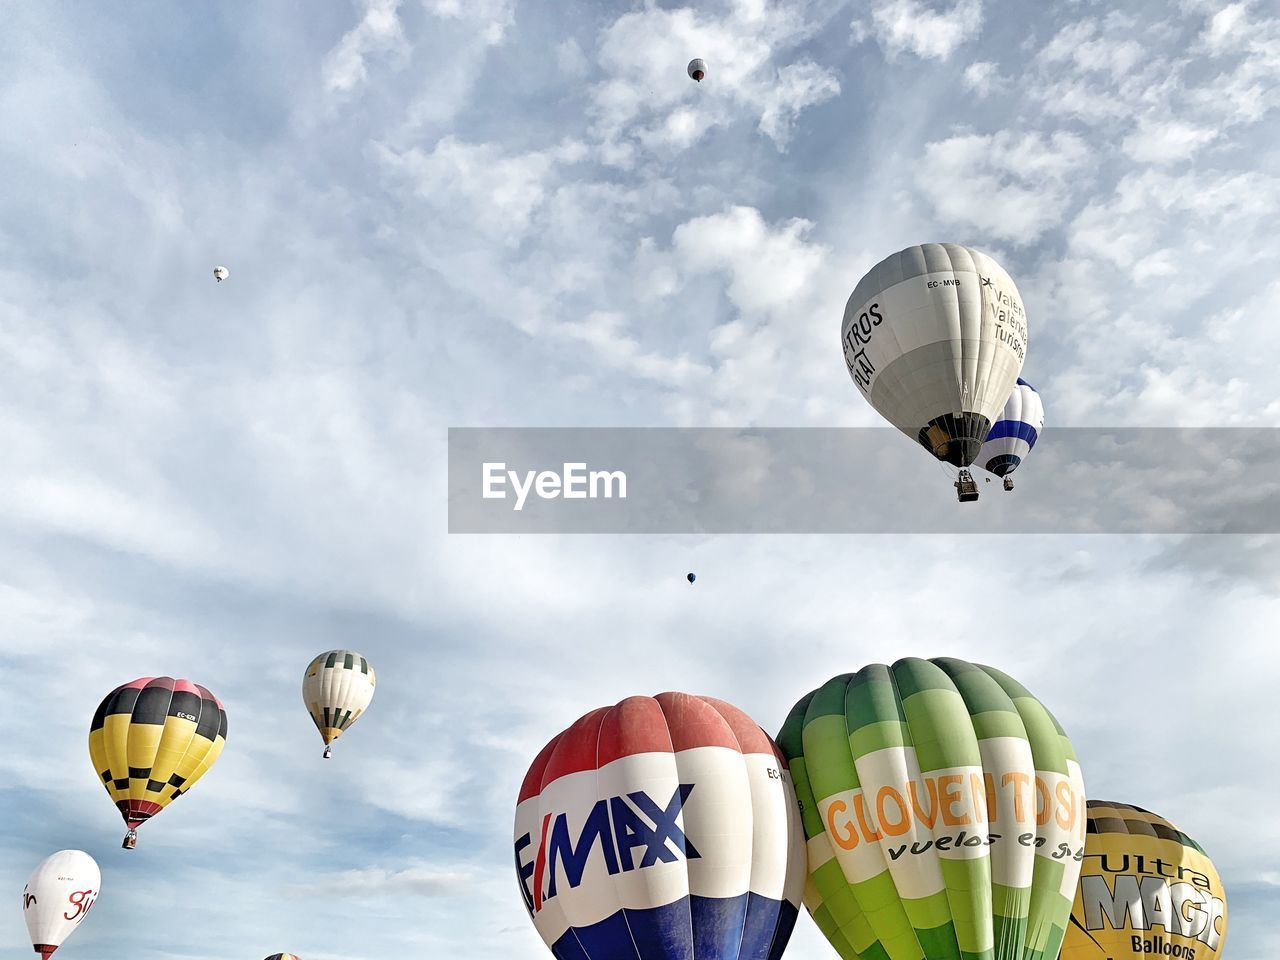 flying, hot air balloon, balloon, mid-air, air vehicle, transportation, sky, cloud - sky, multi colored, adventure, day, nature, ballooning festival, sport, parachute, low angle view, mode of transportation, extreme sports, outdoors, travel, parasailing